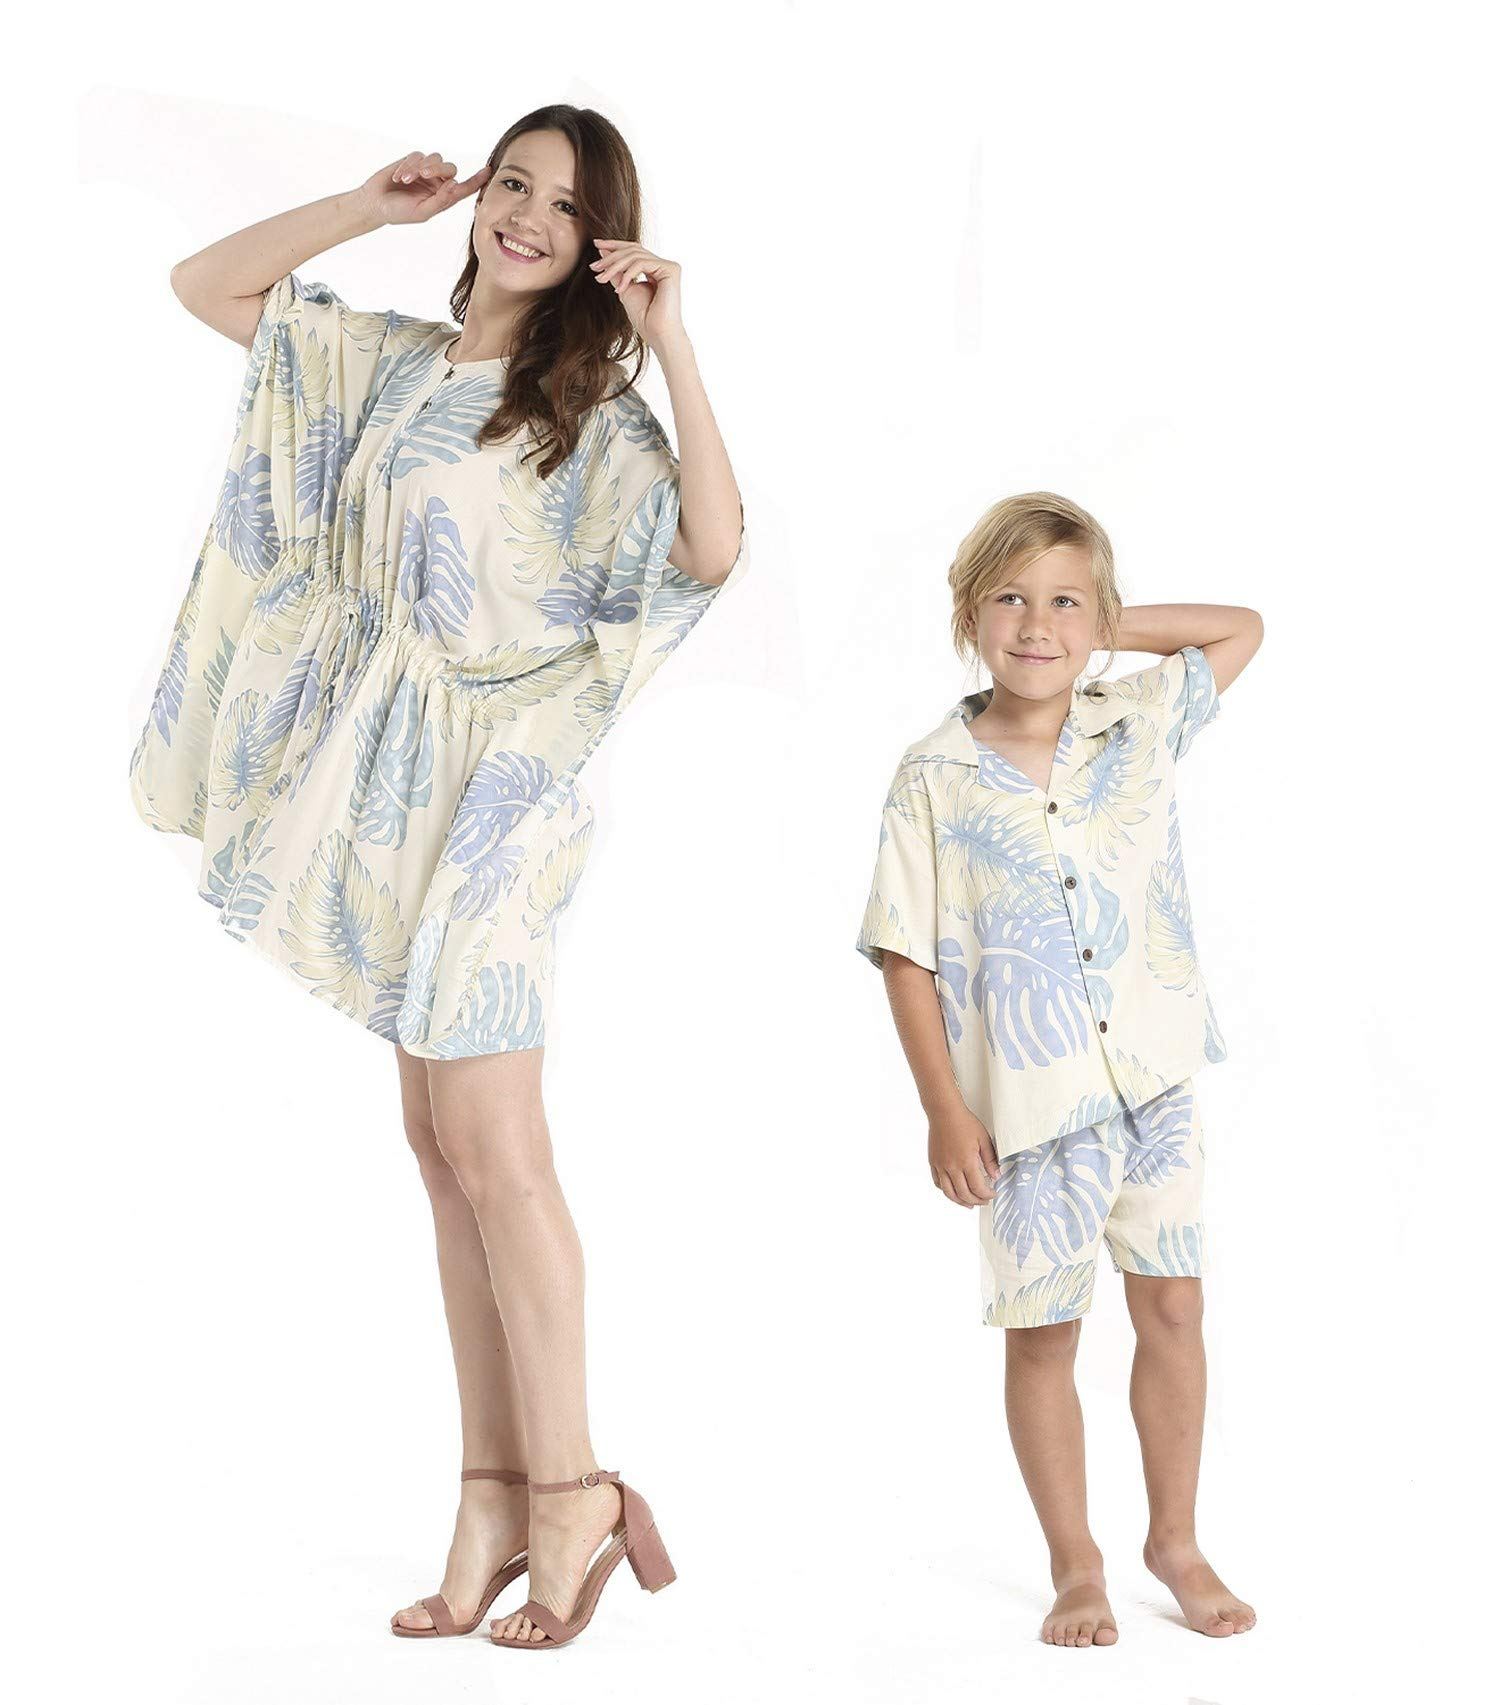 Matching Mother Son Hawaiian Luau Outfit Poncho Dress Shirt in Palm Leaves Cream Women One Size Boy 8 by Hawaii Hangover (Image #1)